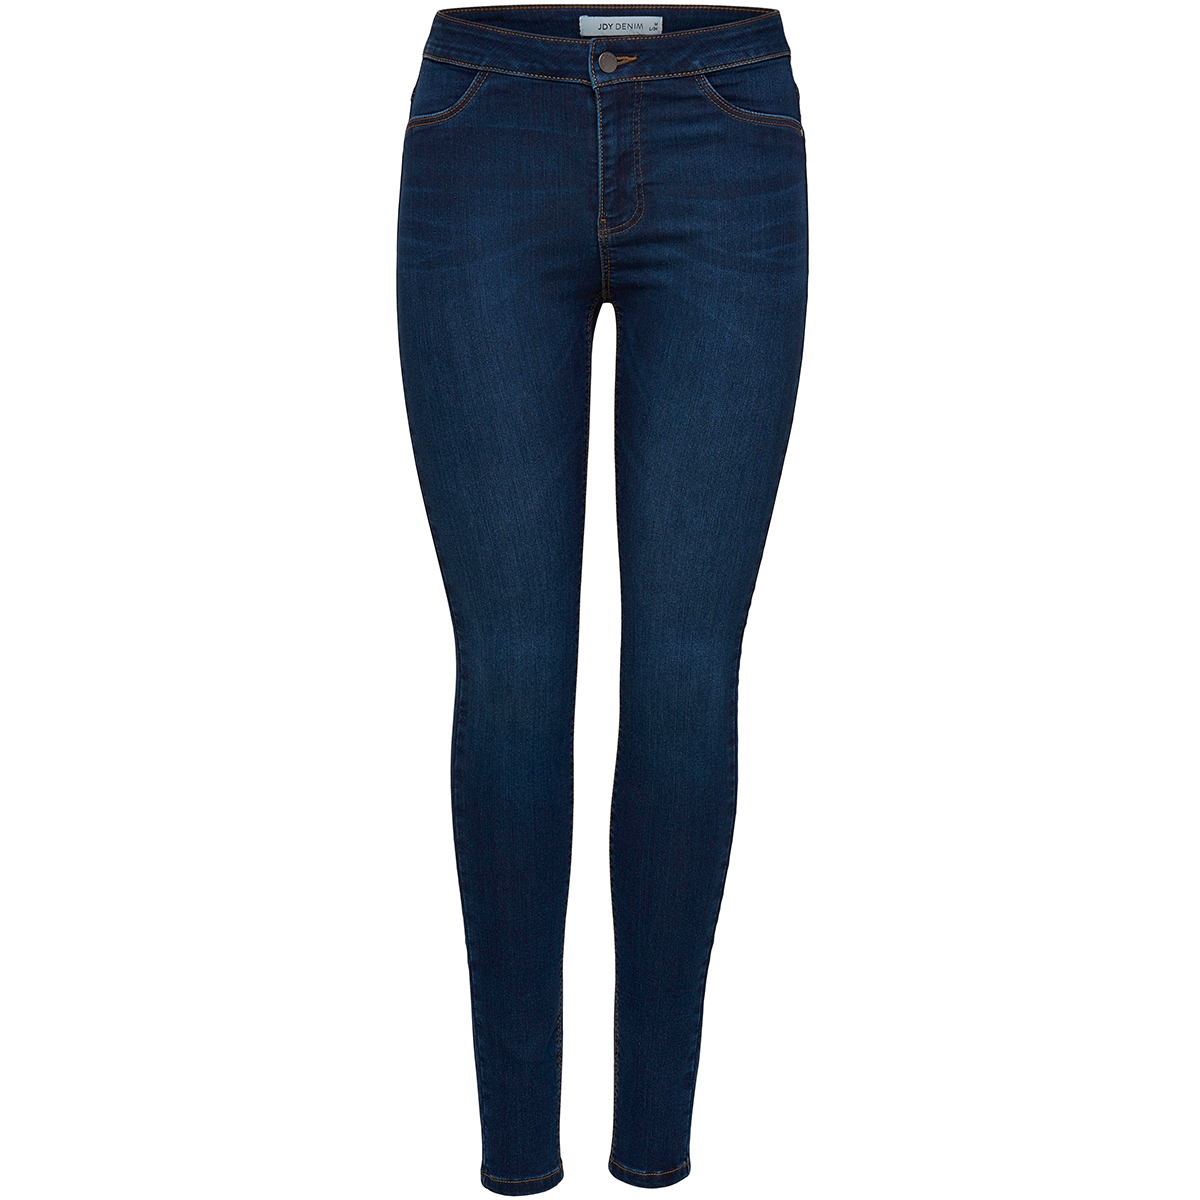 jdyella jegging rw dark blue dnm no 15159251 jacqueline de yong jeans dark blue denim